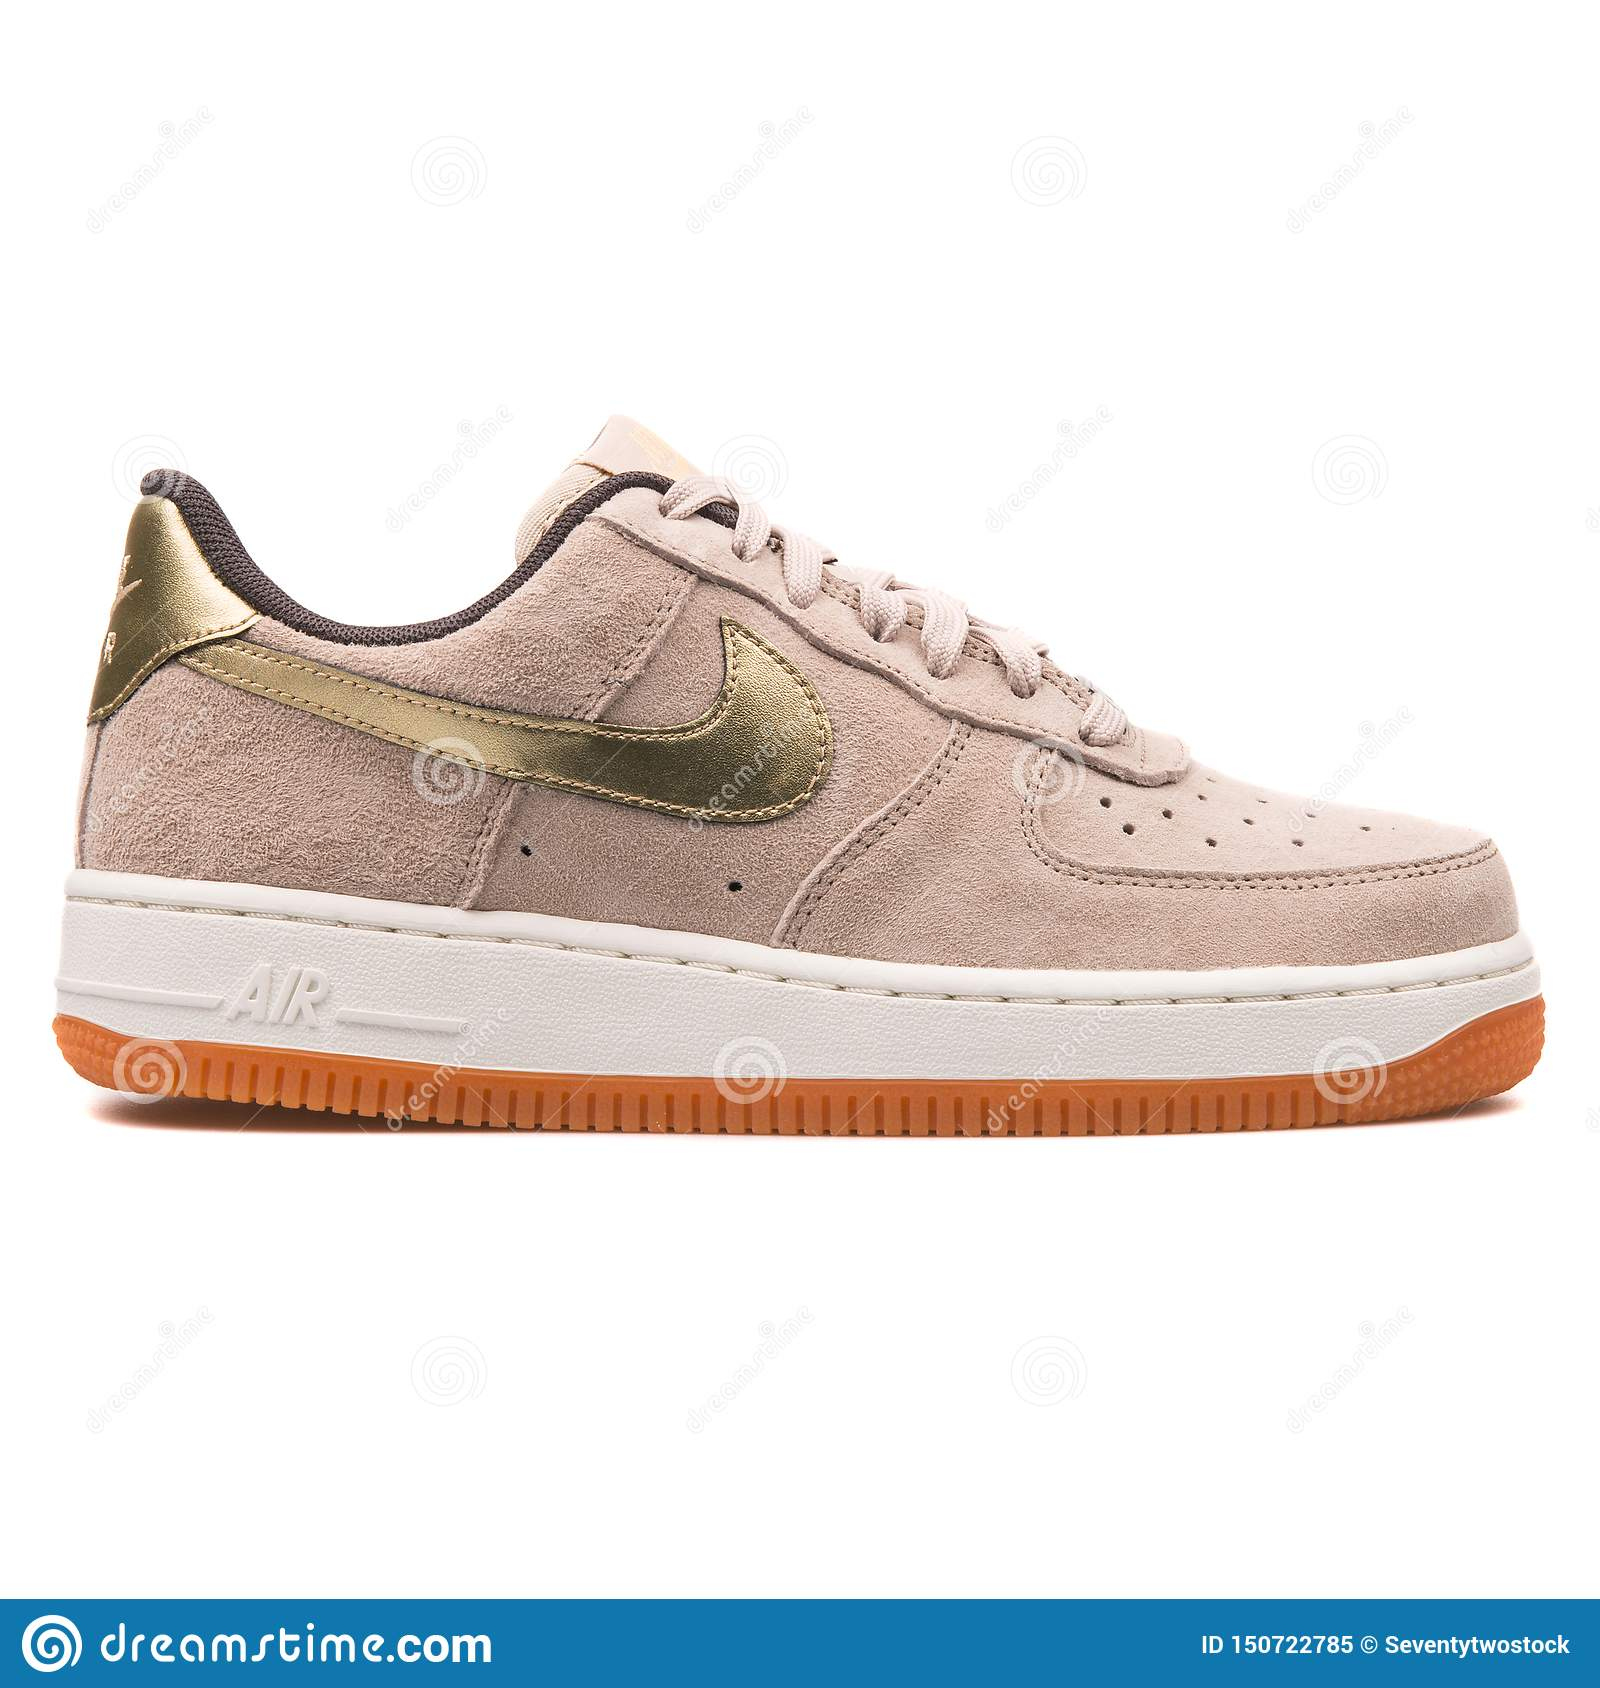 nike air force 1 nere e oro